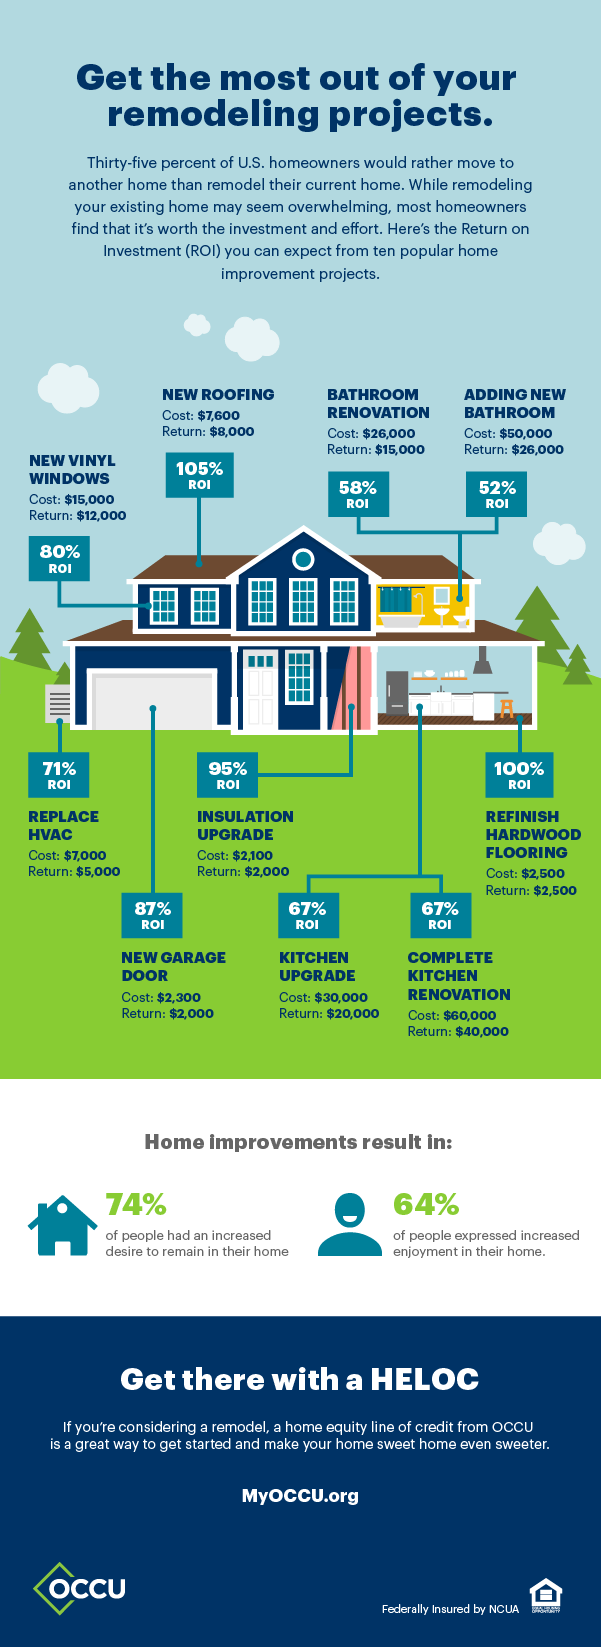 Return on investment for home improvement projects | Oregon Community Credit Union